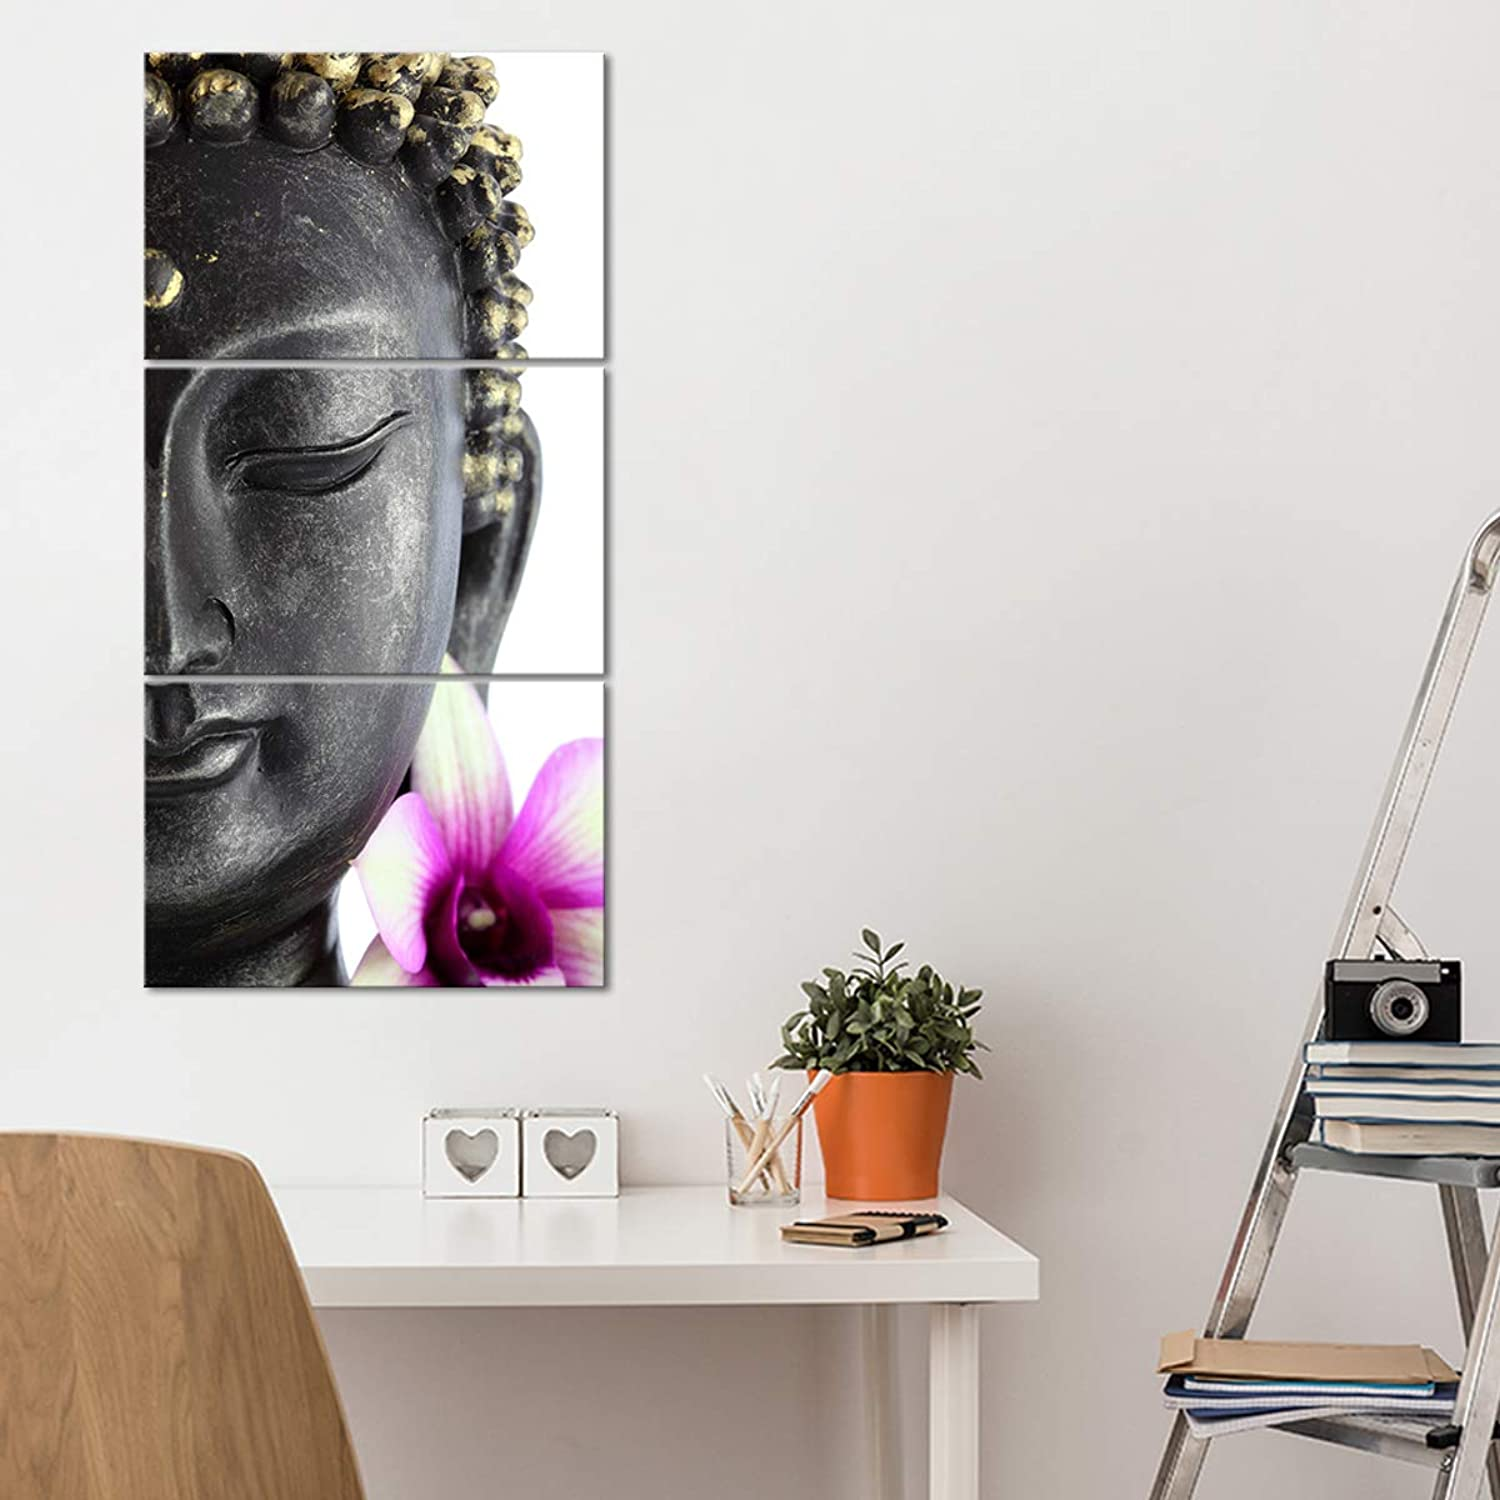 "Enlightened Buddha Canvas Wall Art - Ready to Hang - Buddhist Decor Picture with Buddha Head Statue - Large Print for Home Office, Living Room, Bedroom, Kitchen - Made in USA - 3 Piece 37"" x 18"""